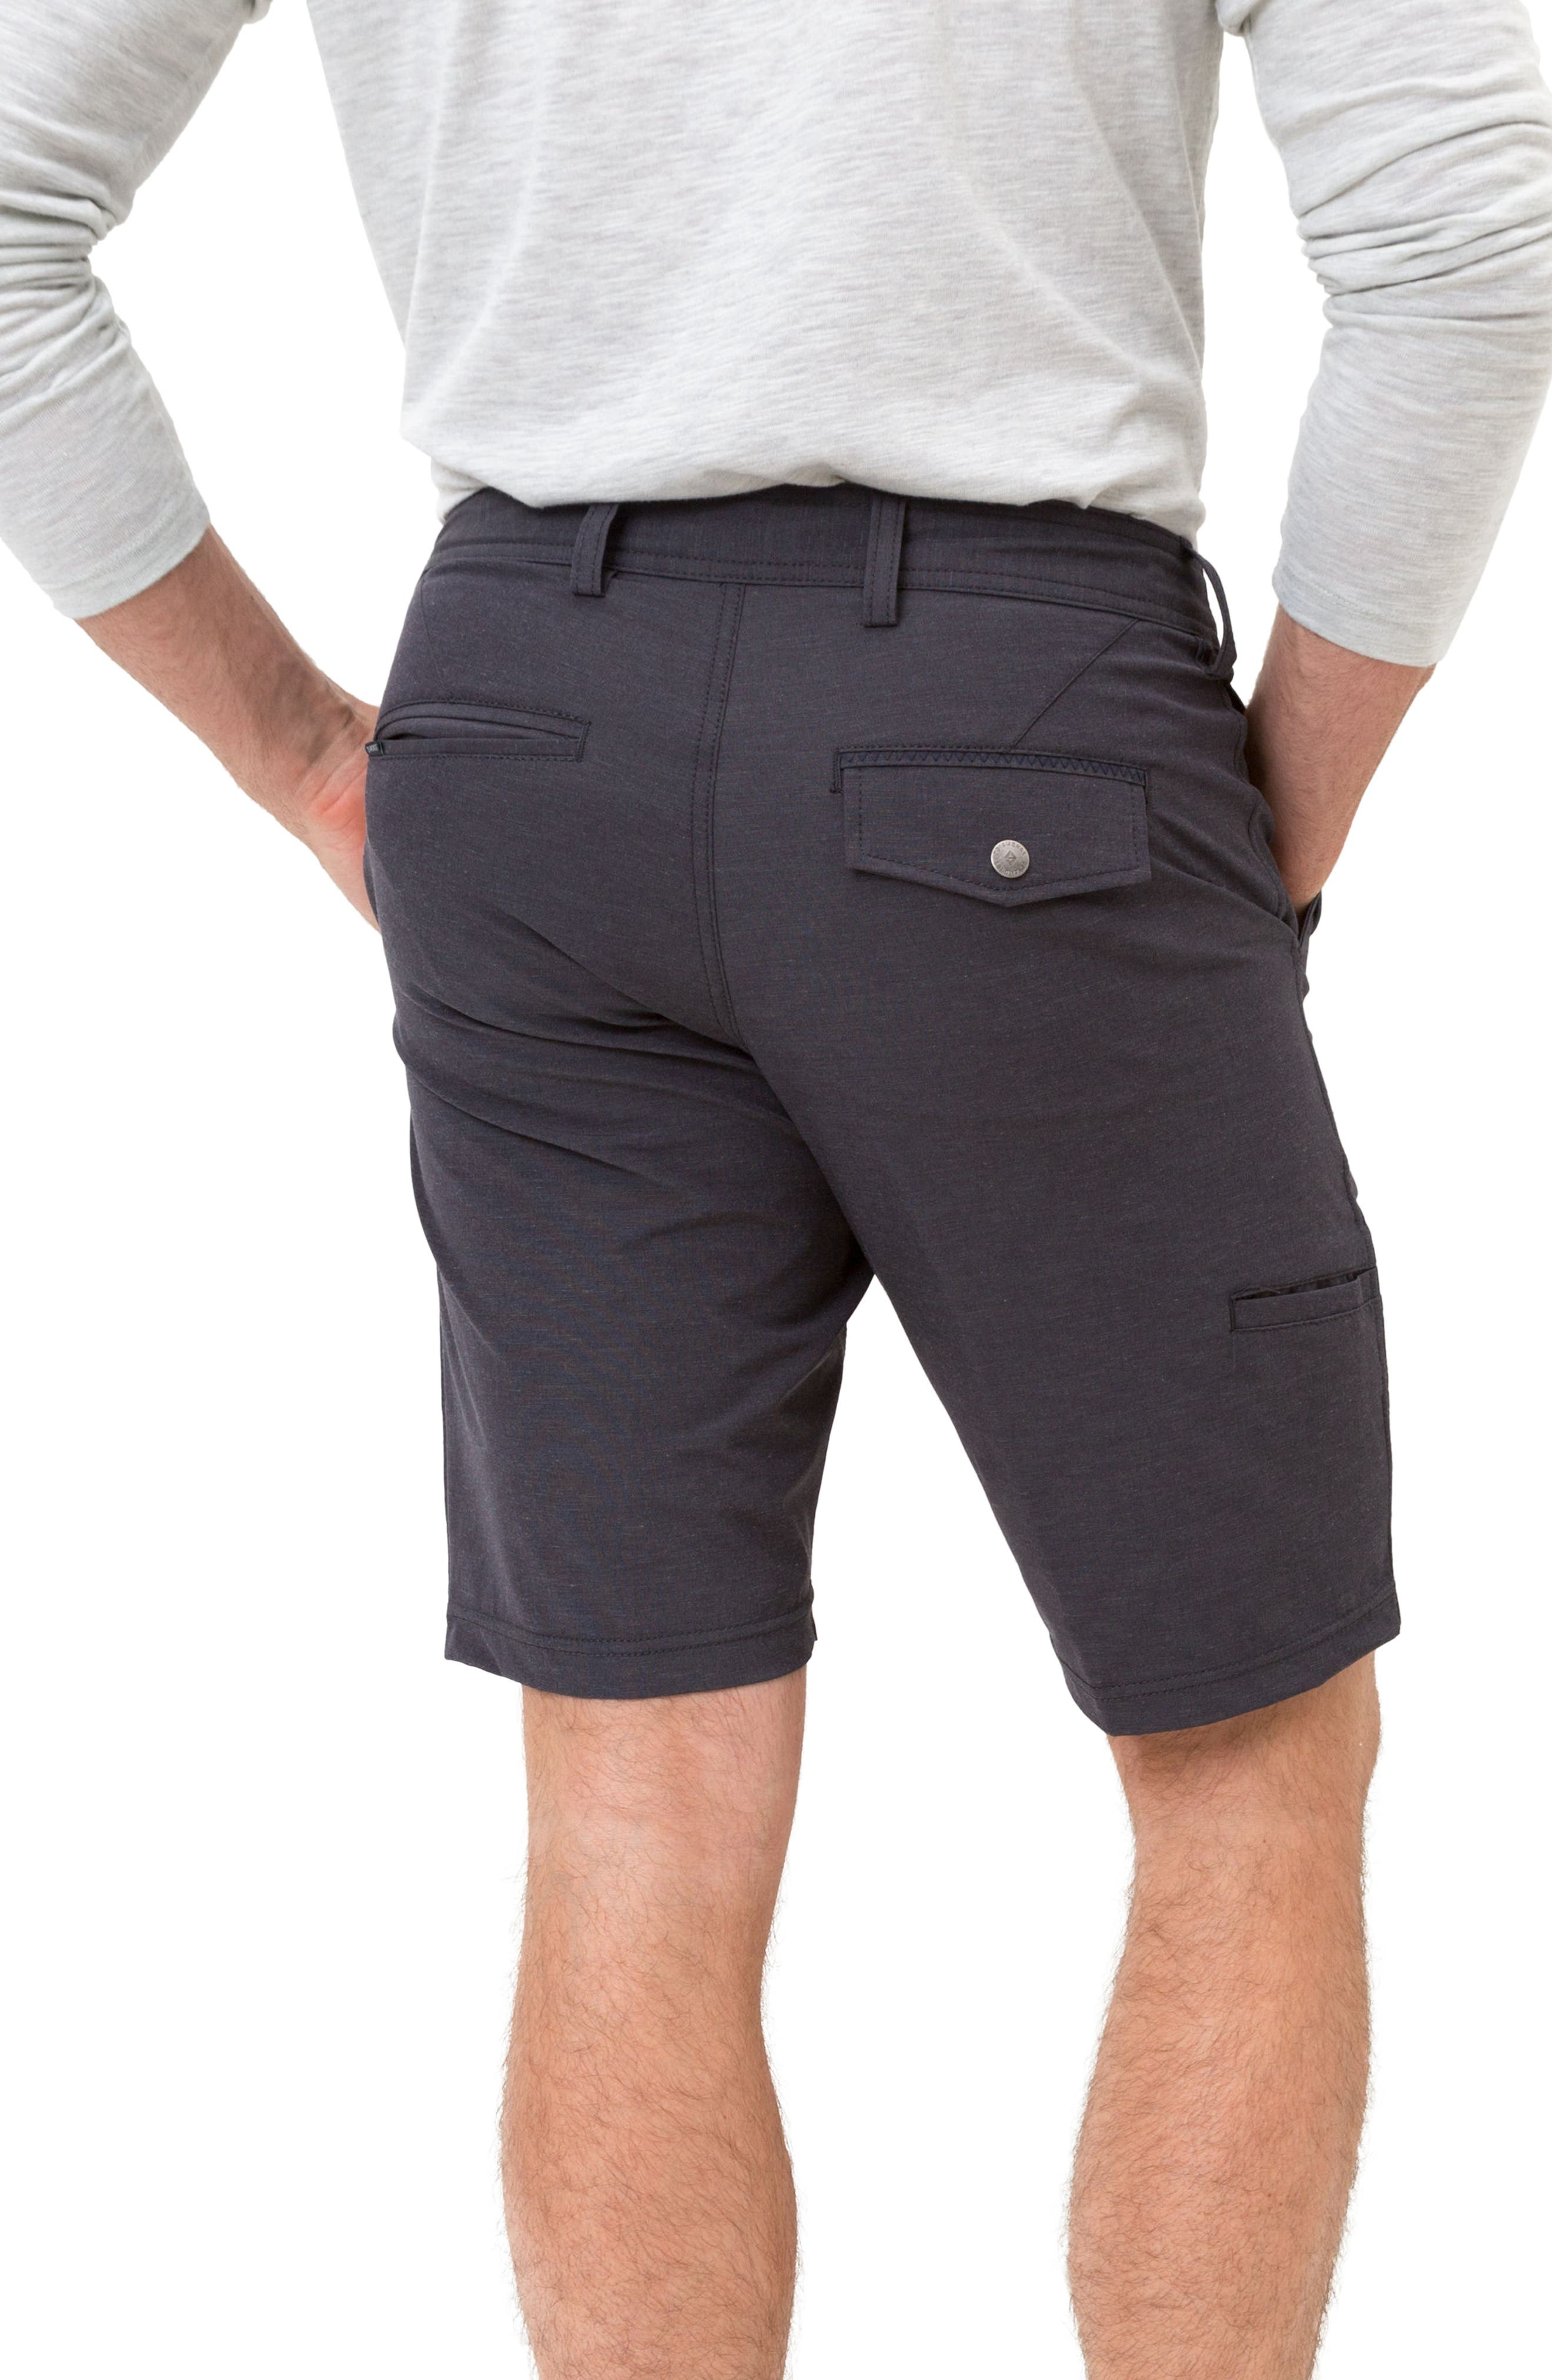 Velocity Hybrid Shorts,                             Alternate thumbnail 2, color,                             CHARCOAL